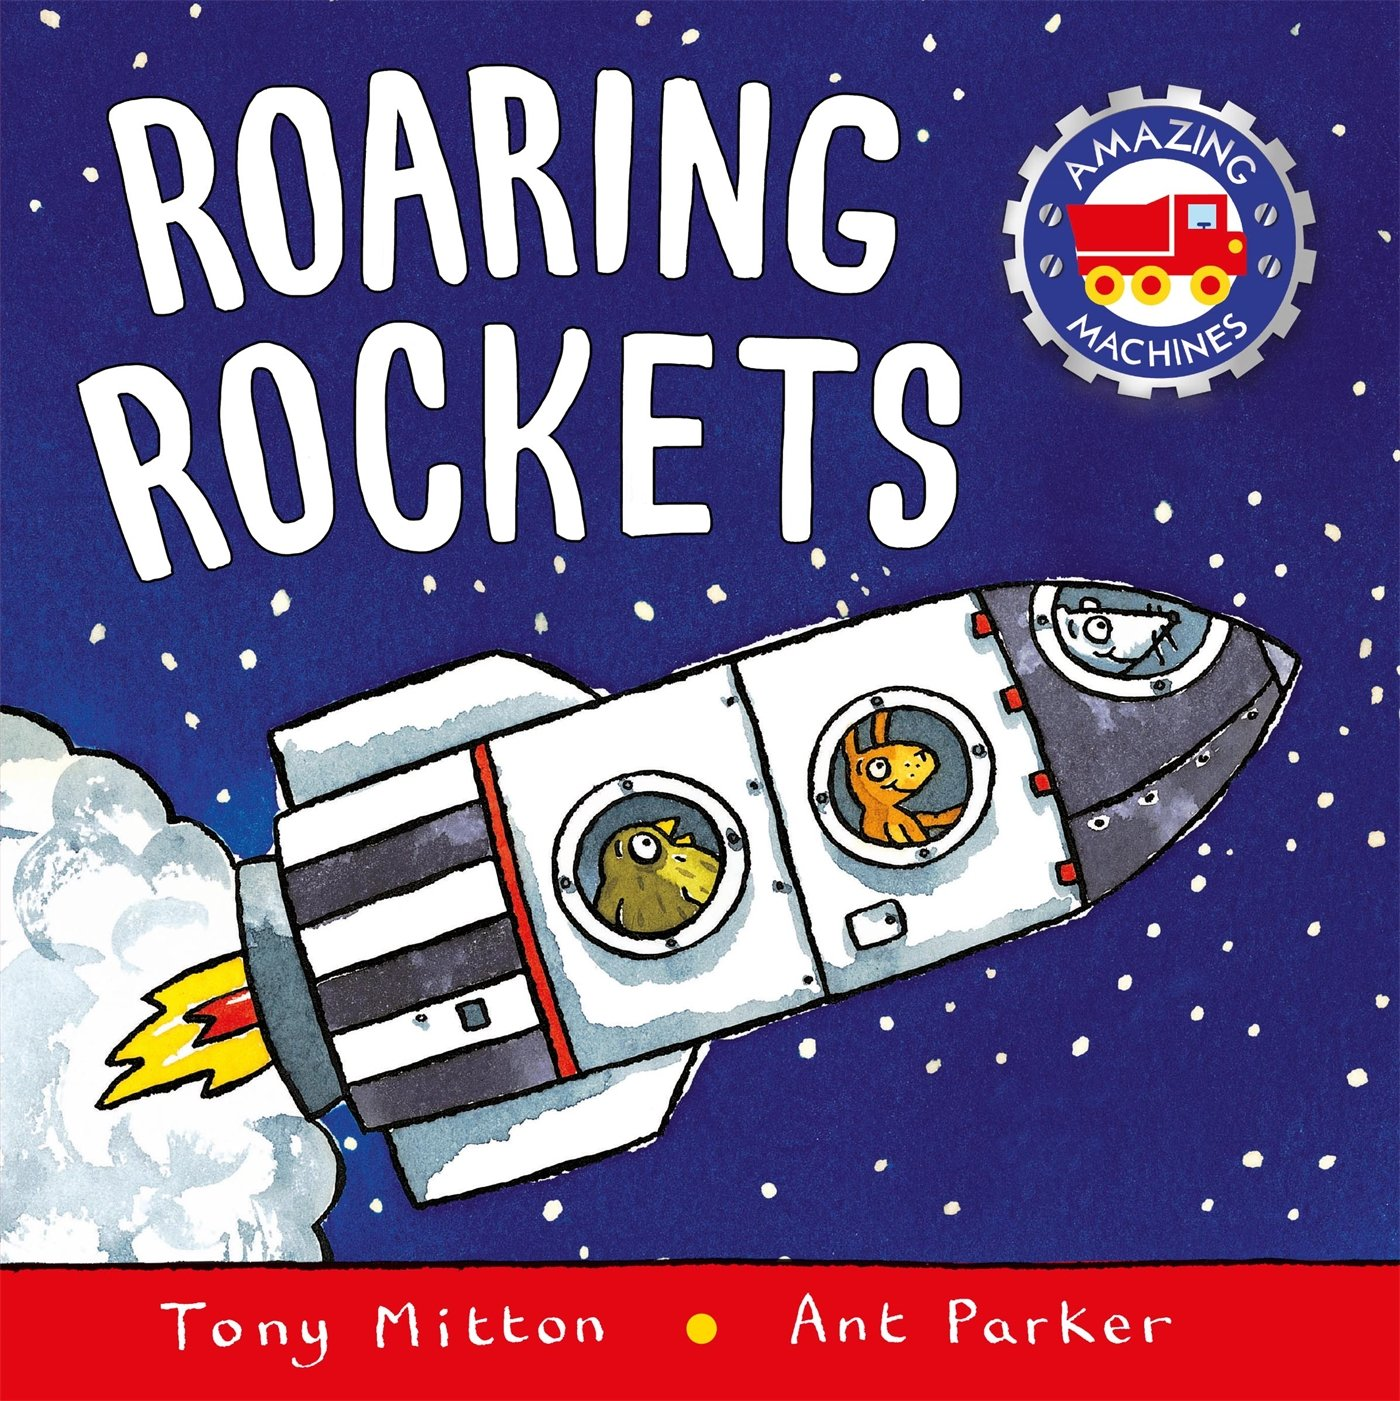 Roaring Rockets (Amazing Machines): Amazon.co.uk: Tony Mitton, Ant ...